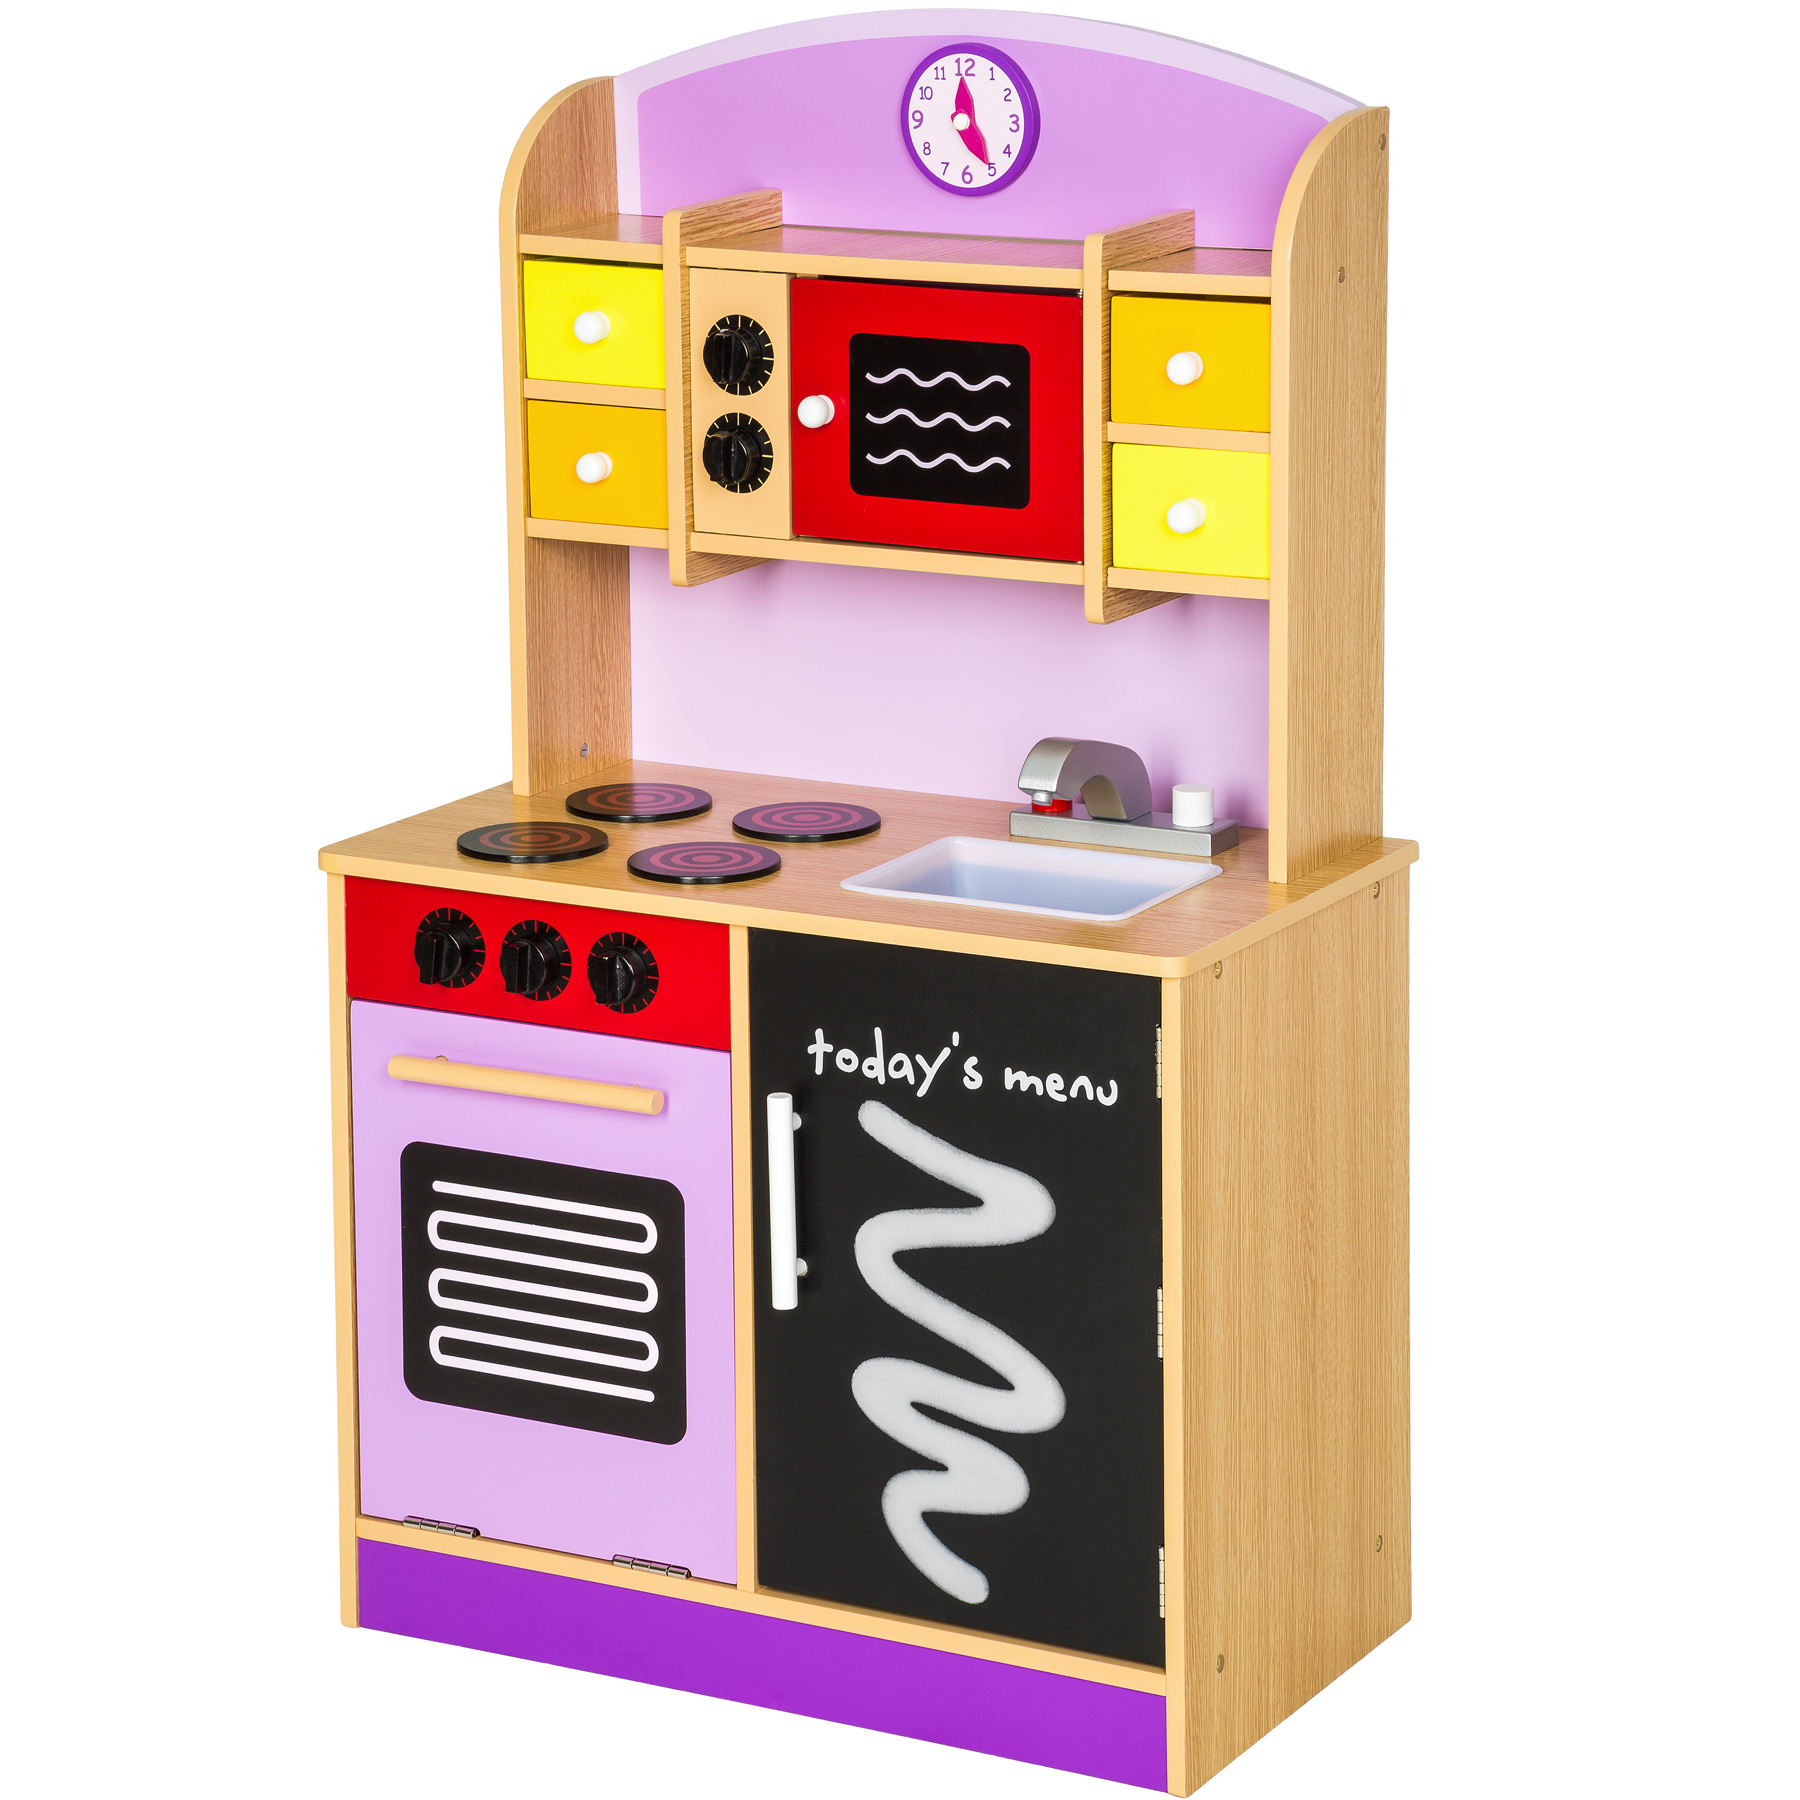 details about wooden childrens kids kitchen pretend role play cooking